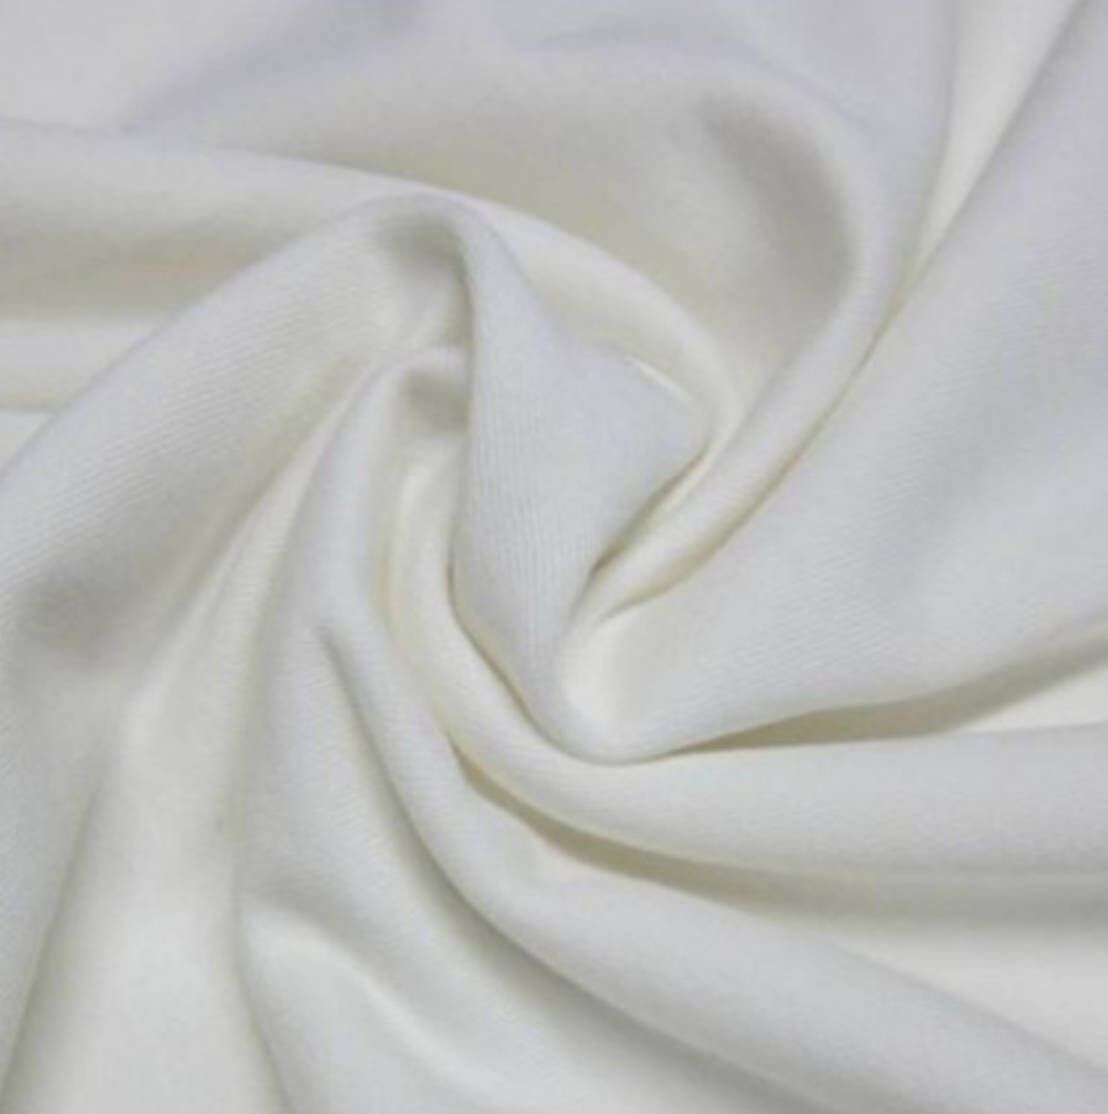 6d8d1bd2149 Natural Bamboo Organic Cotton Extra Soft Jersey Fabric - By the Yard by  SoRad on Etsy